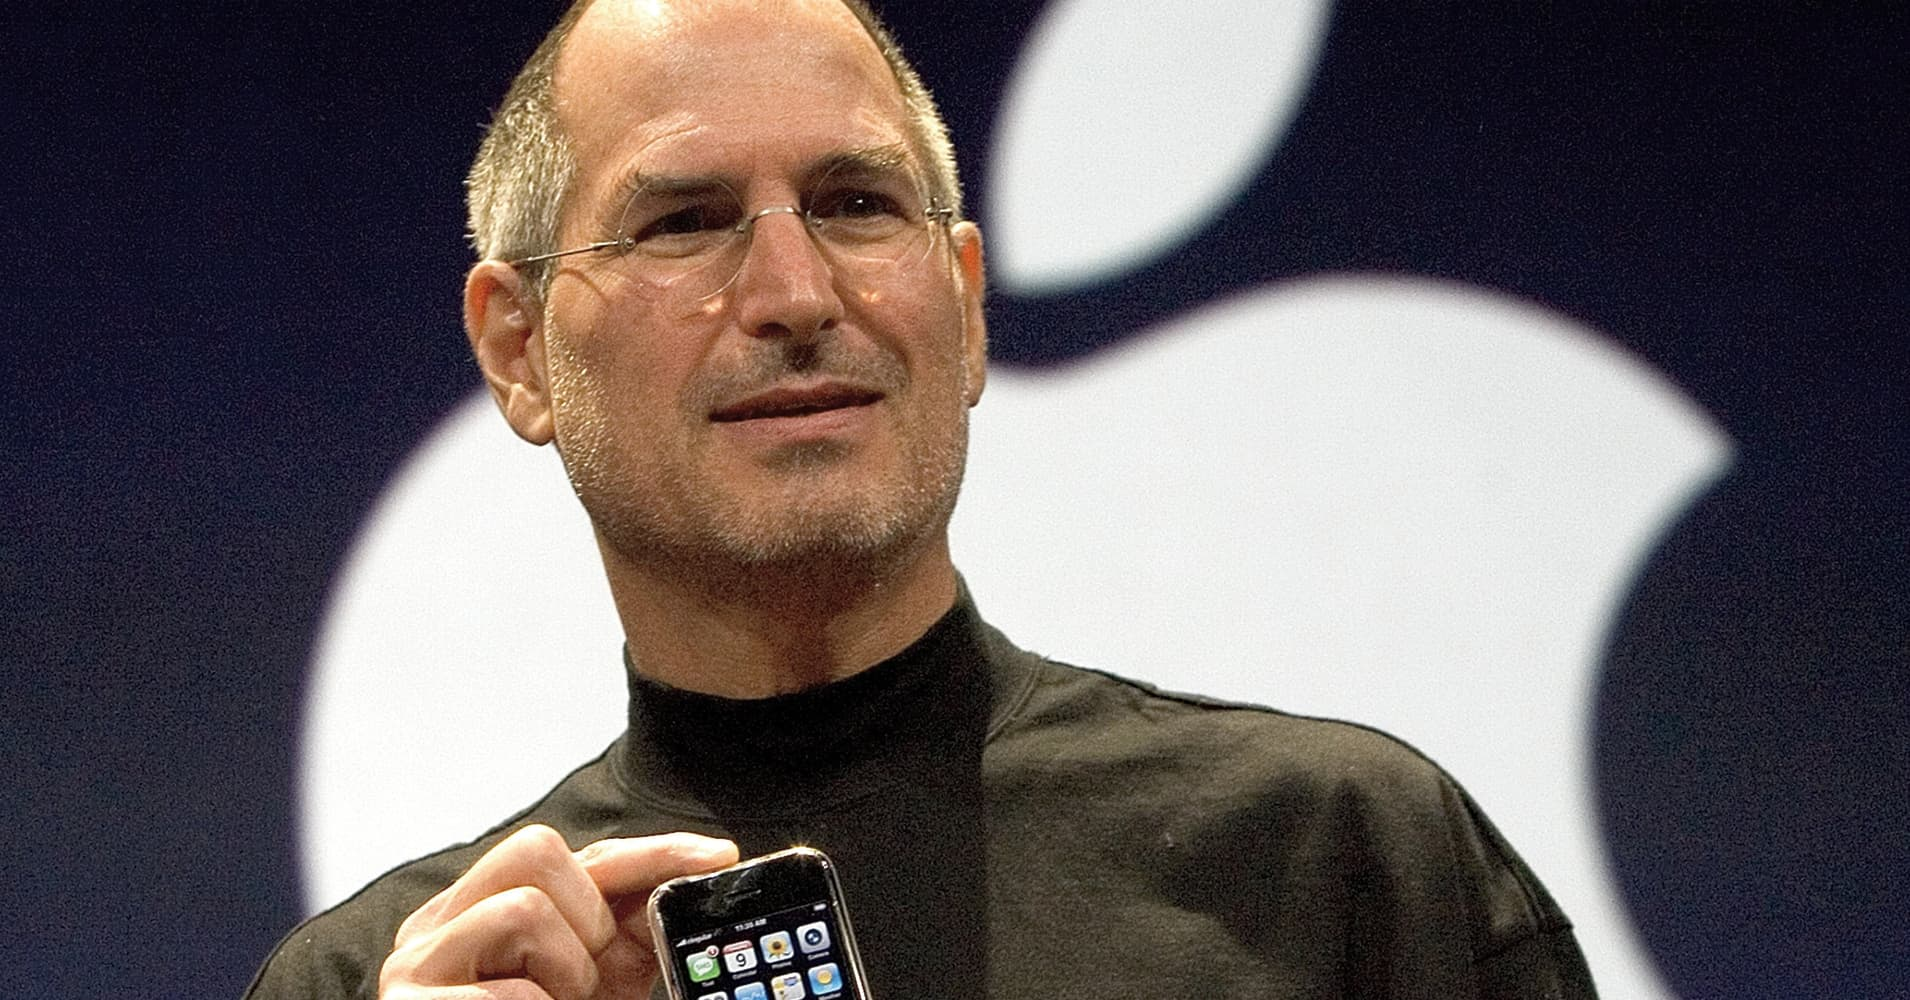 The late Steve Jobs, Apple founder and former CEO, introduces the iPhone at a conference in 2007.